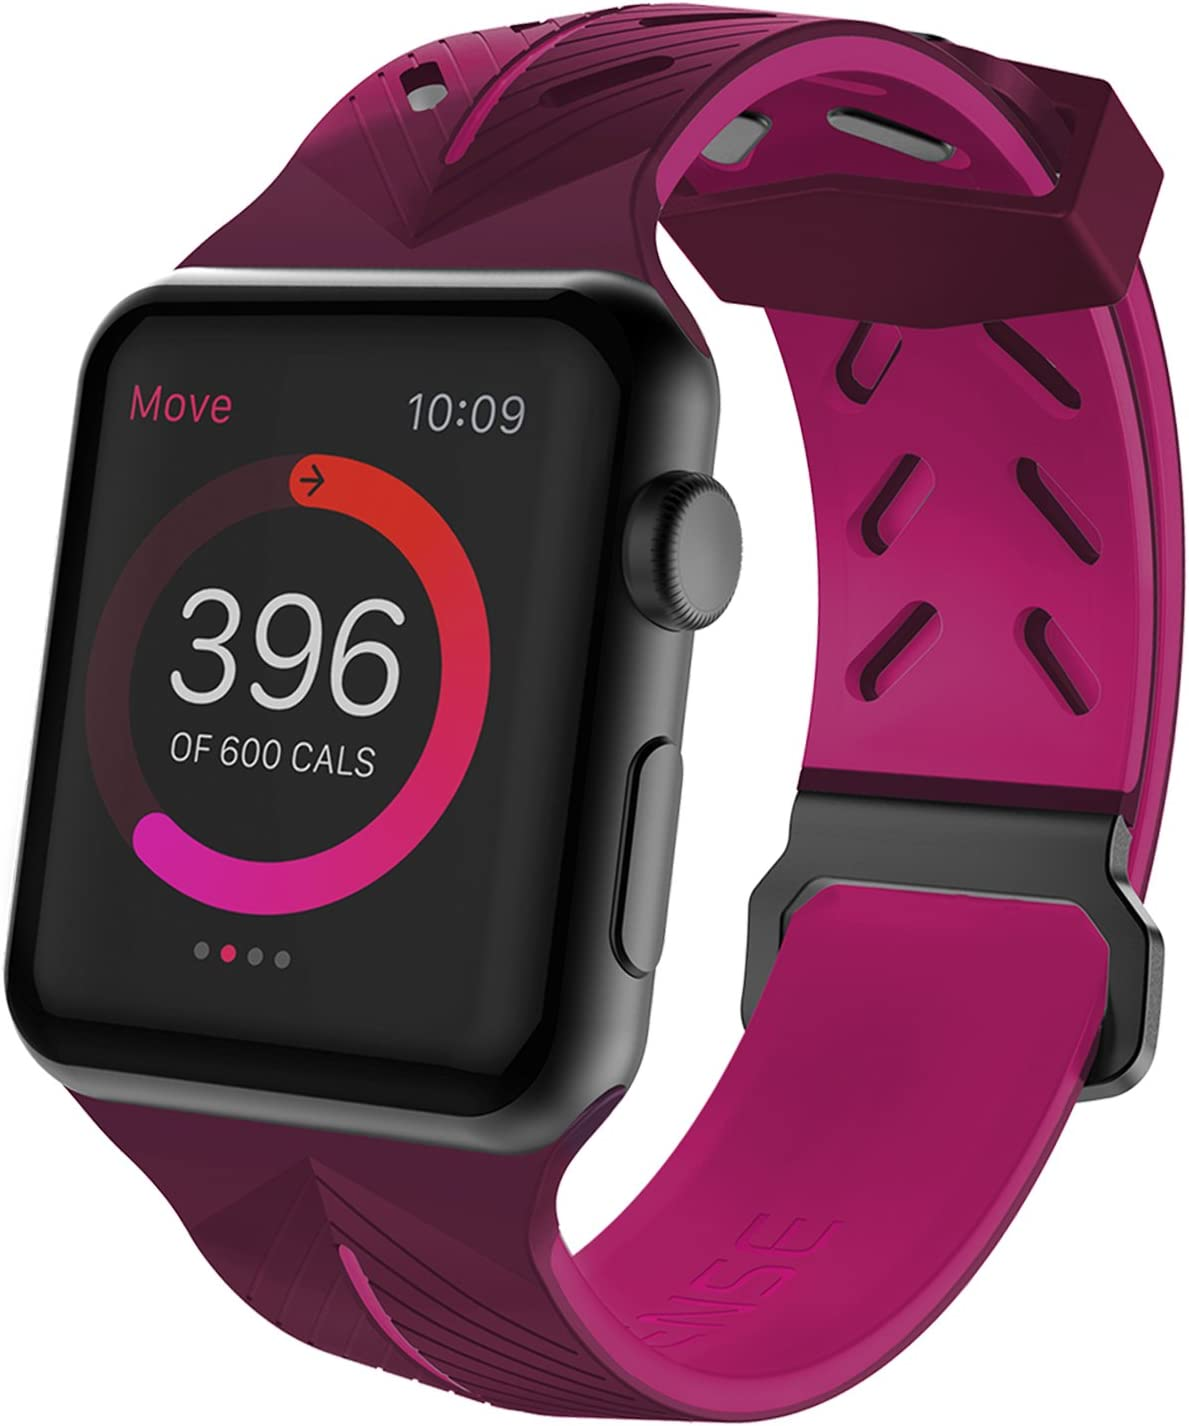 X-Doria Action Band, Compatible for 38mm Apple Watch Replacement Band - Soft Silicone, Active Watch Band - Compatible with Apple Watch Series 1, Series 2, Series 3 and Nike+, [Purple/Pink]